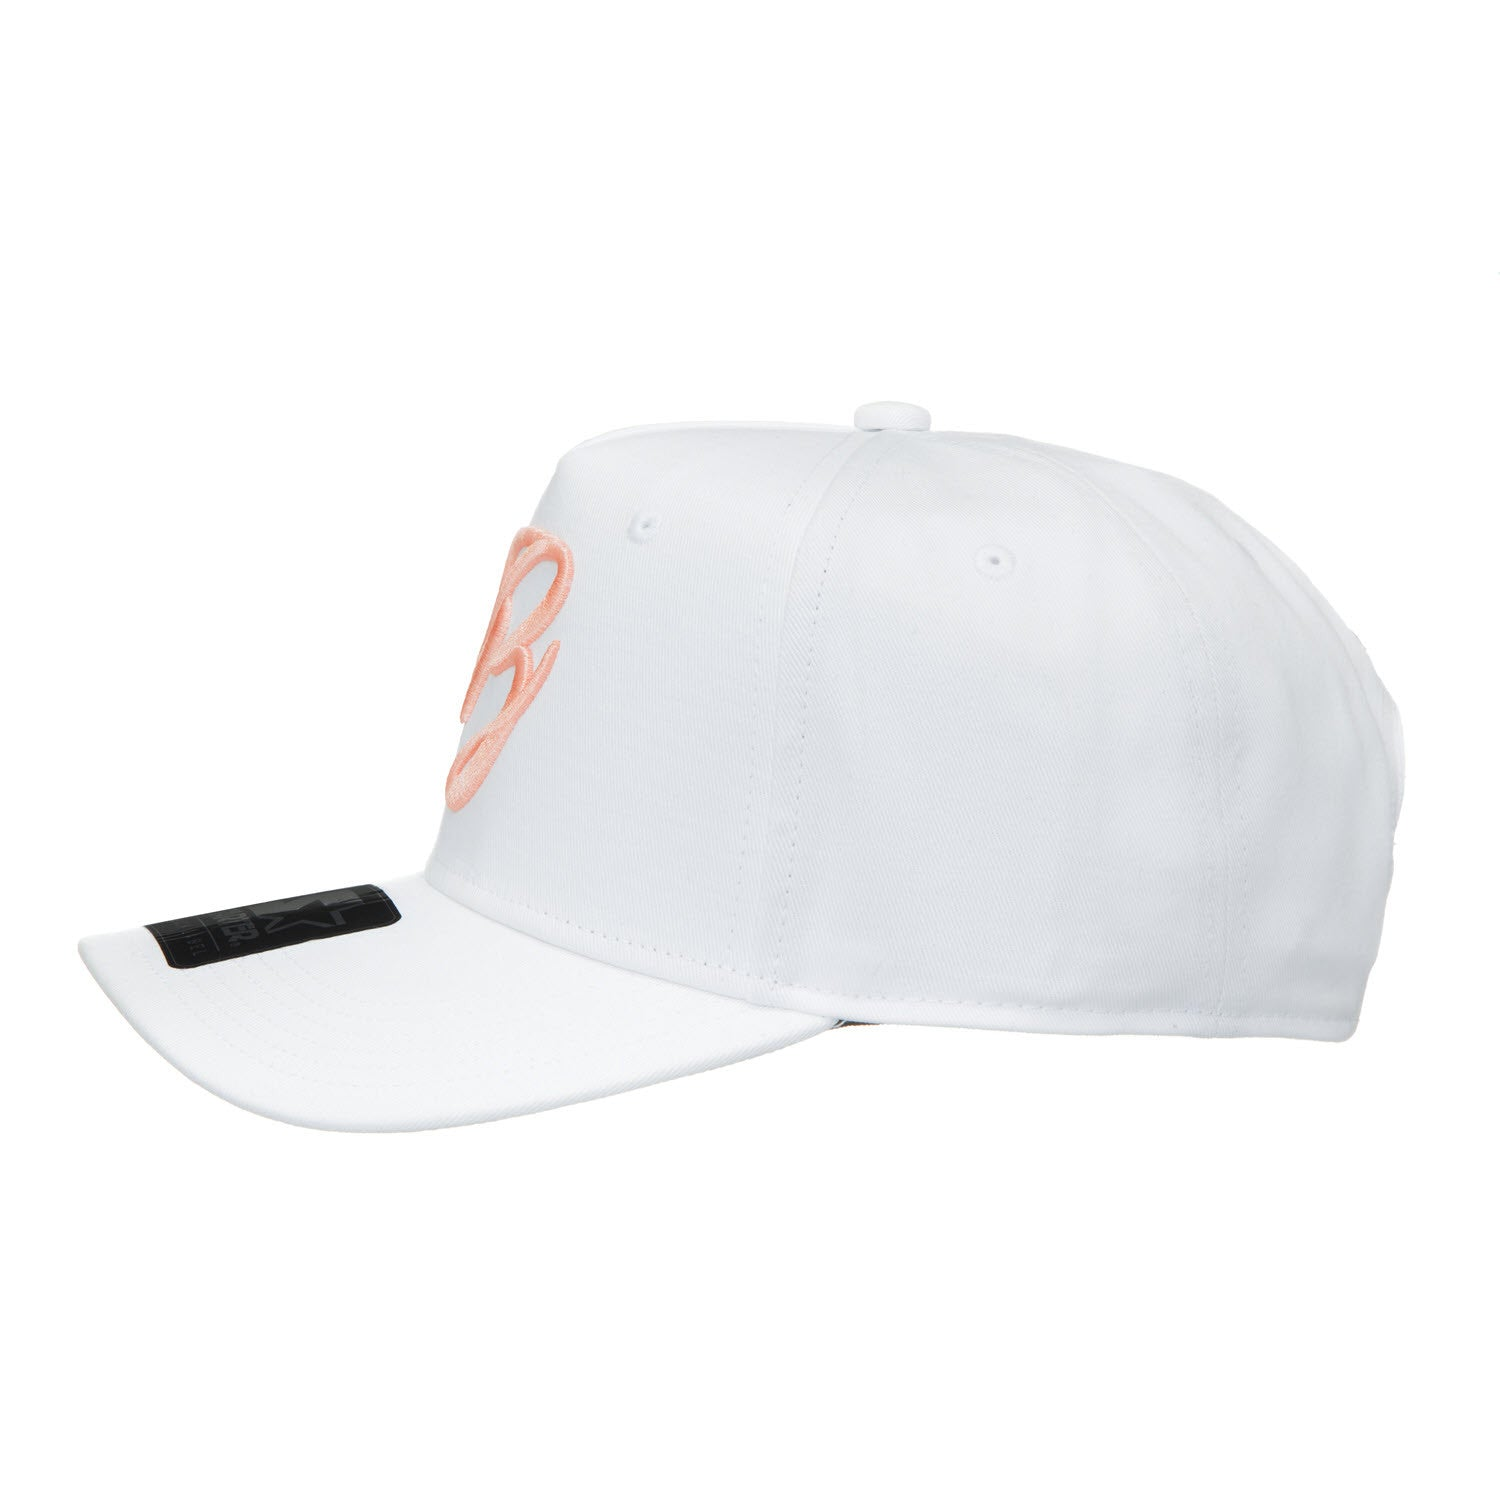 White/Peach Trucker Snapback - BLASE HAT